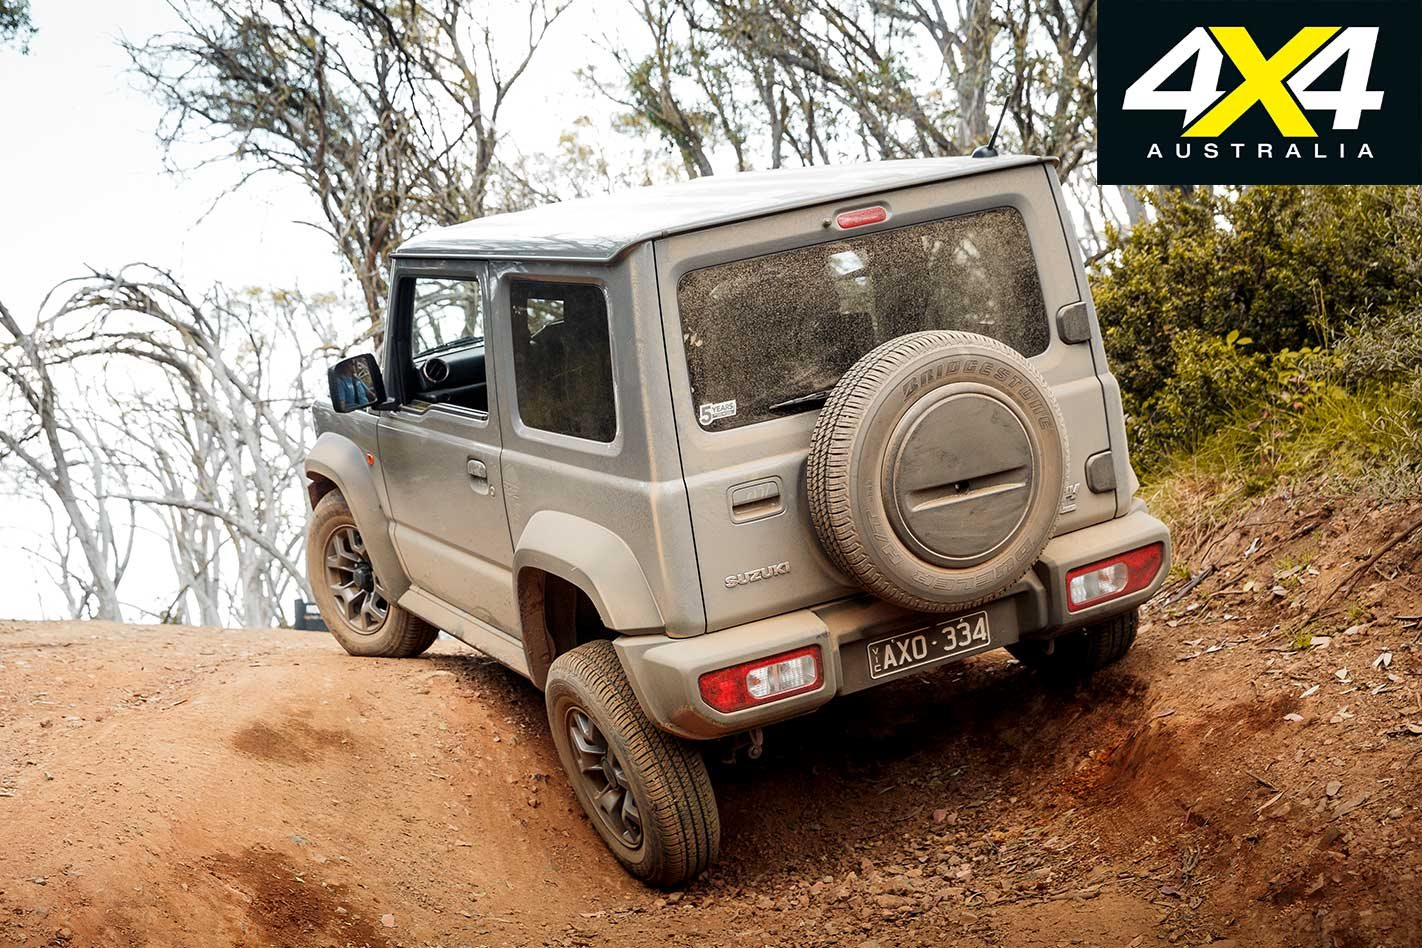 2019 Suzuki Jimny off-road review | 4x4 Australia